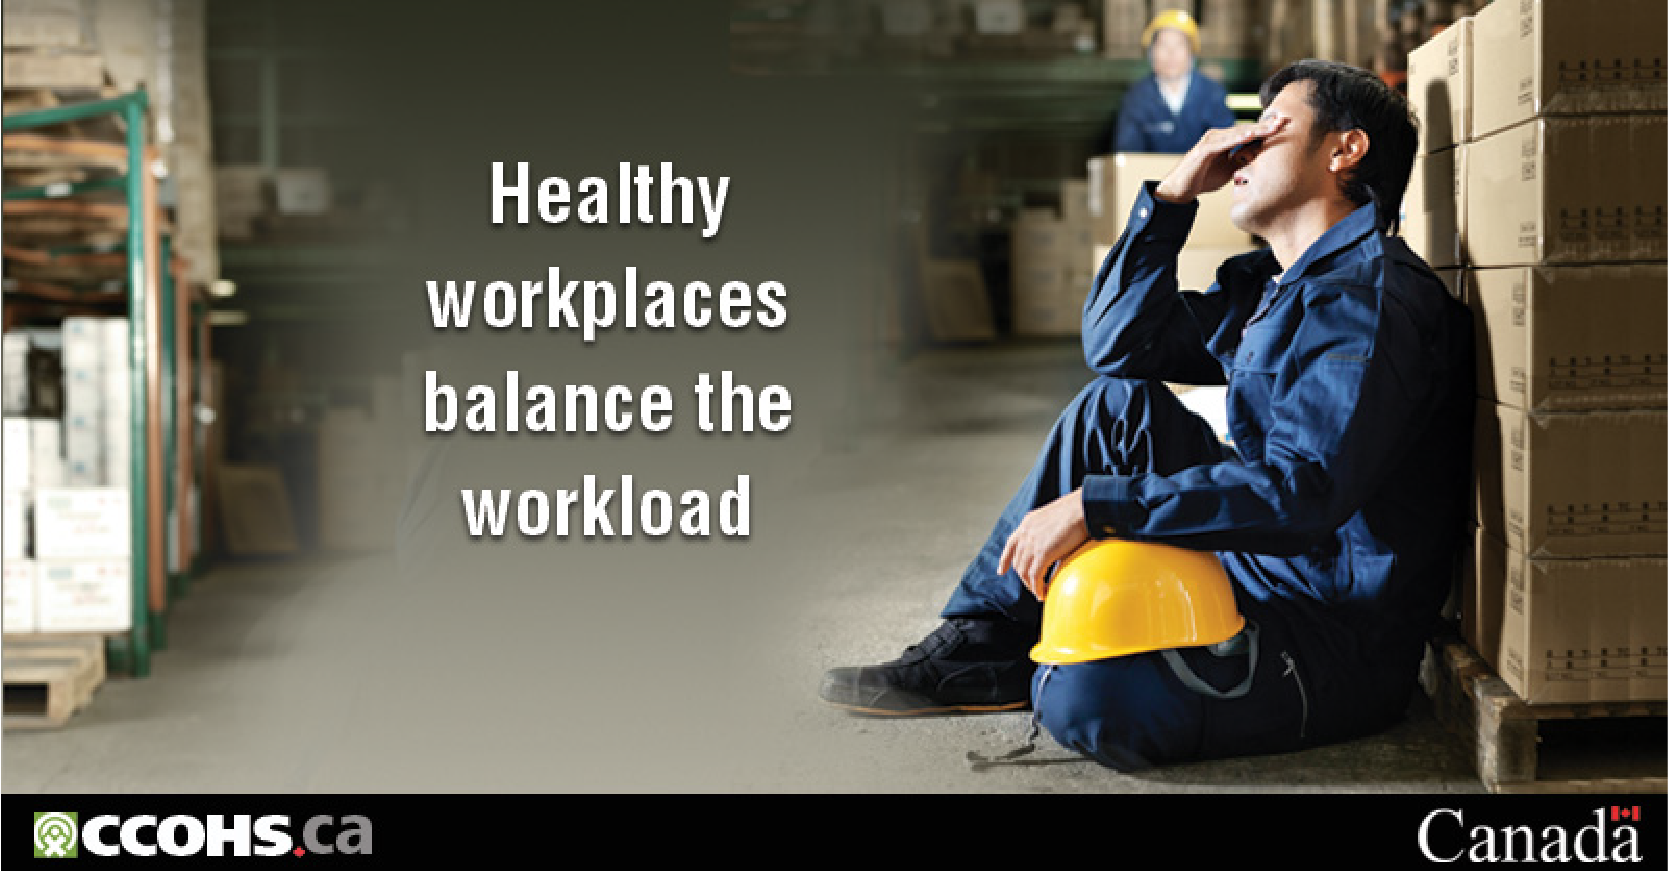 Healthy worplaces balance the workload